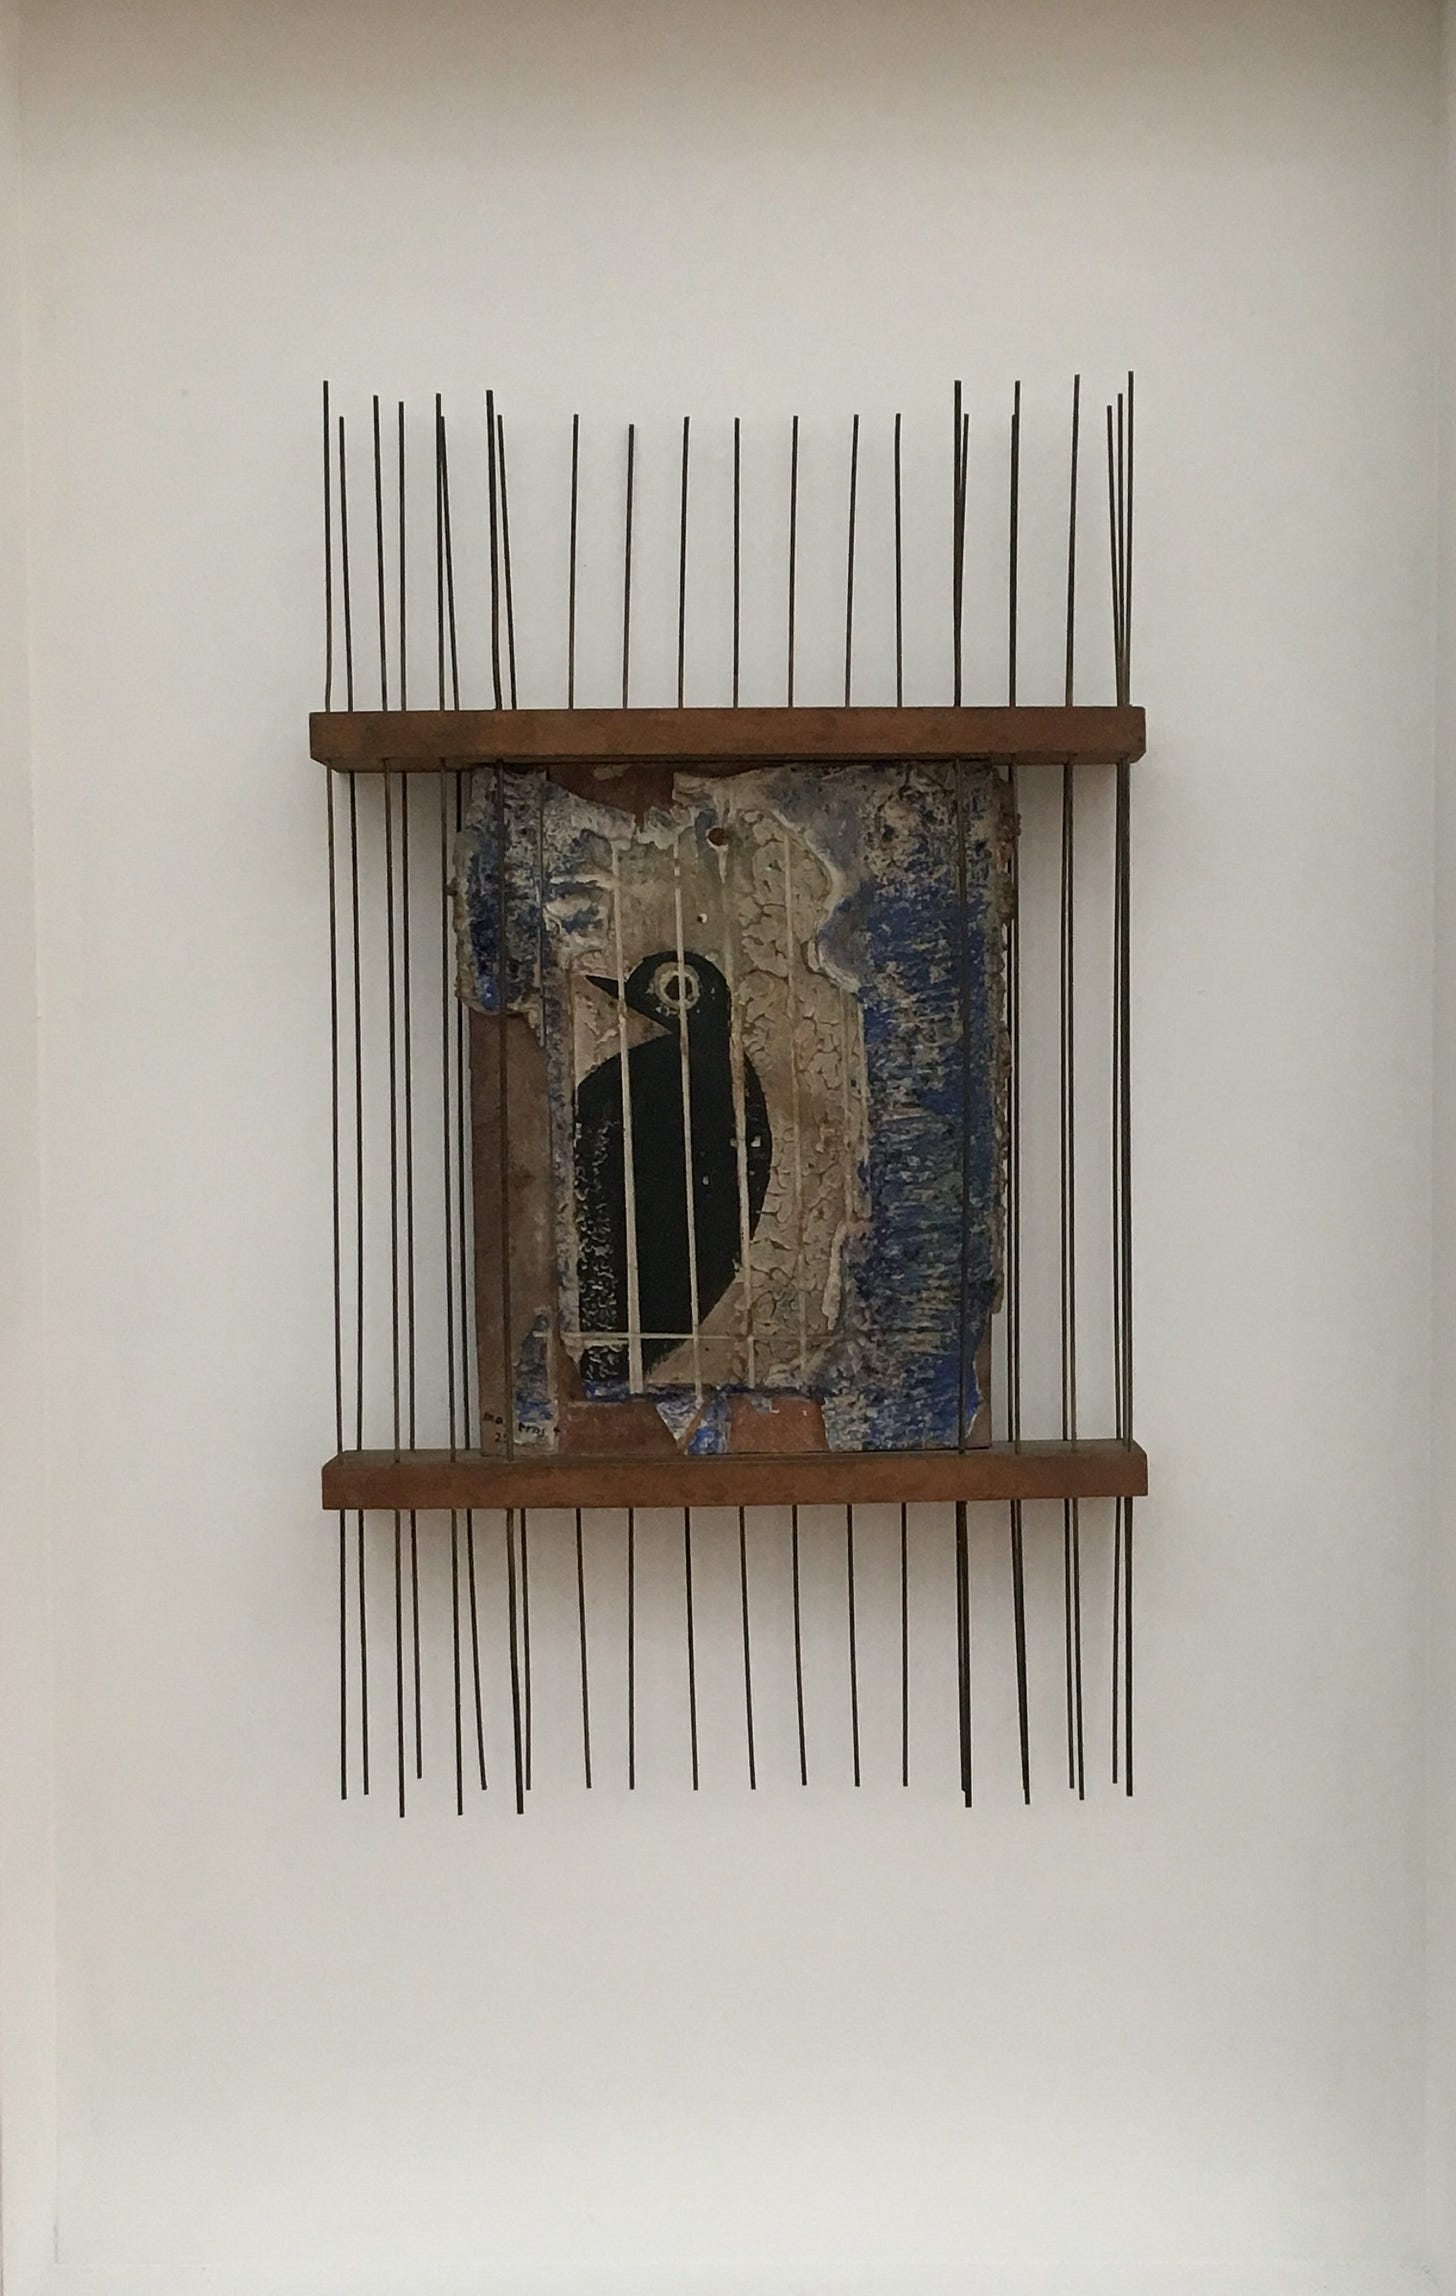 Artwork of a bird in a cage (From Zurich's Kunsthaus)